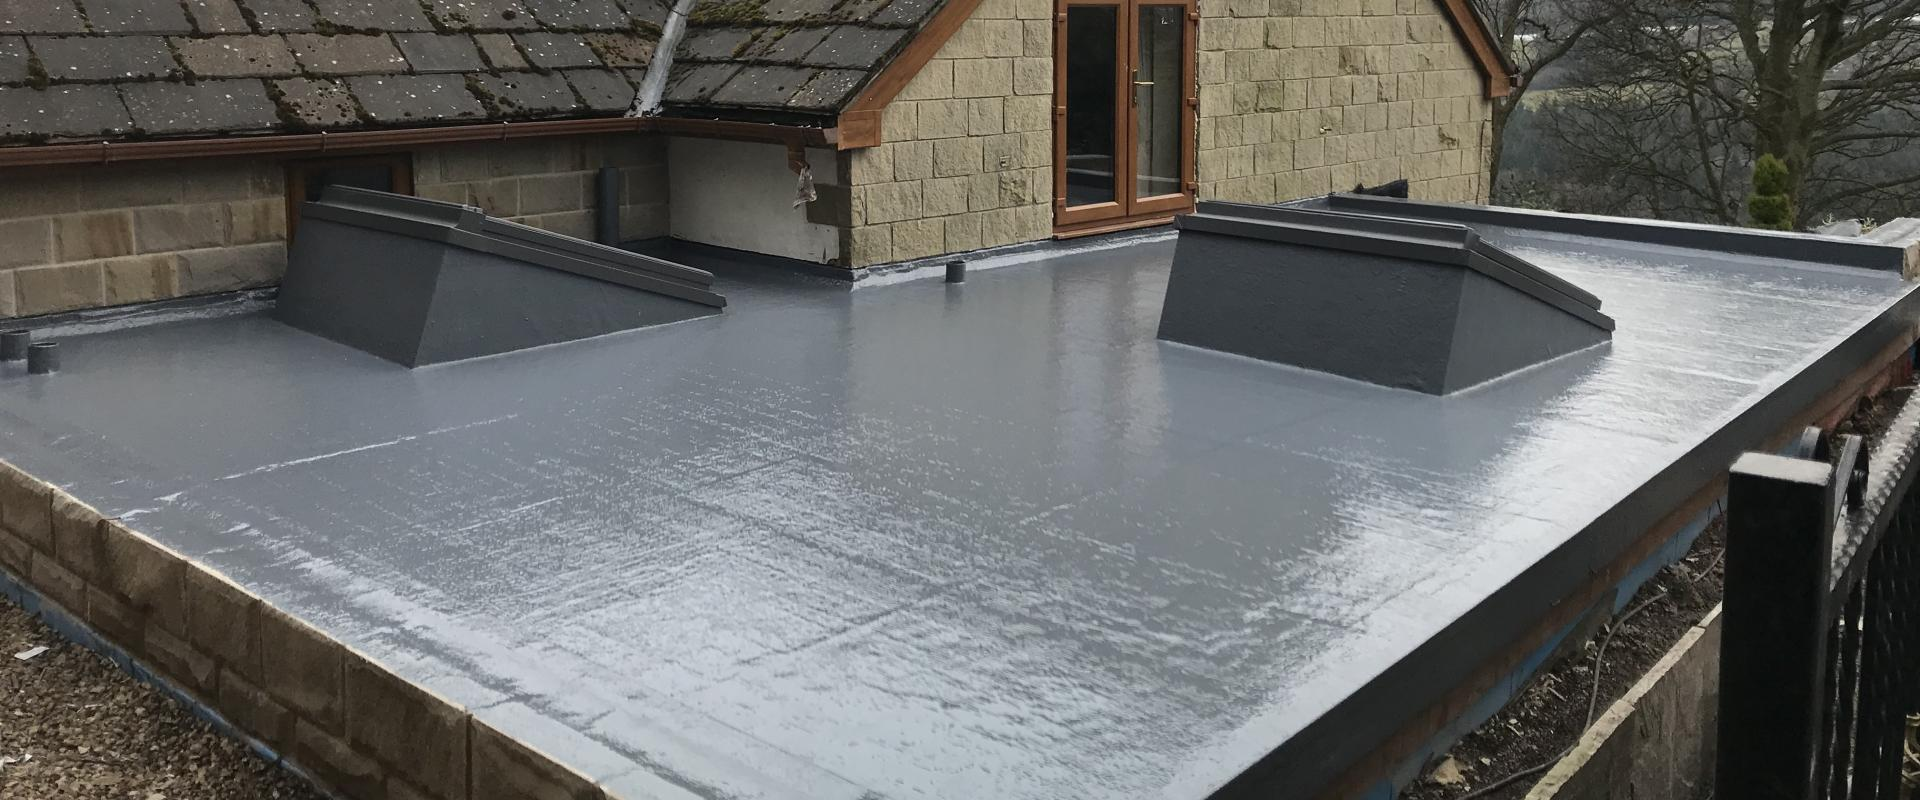 Garage Roofs & Extension Roofs - Seamless Waterproofing for Flat Roofs